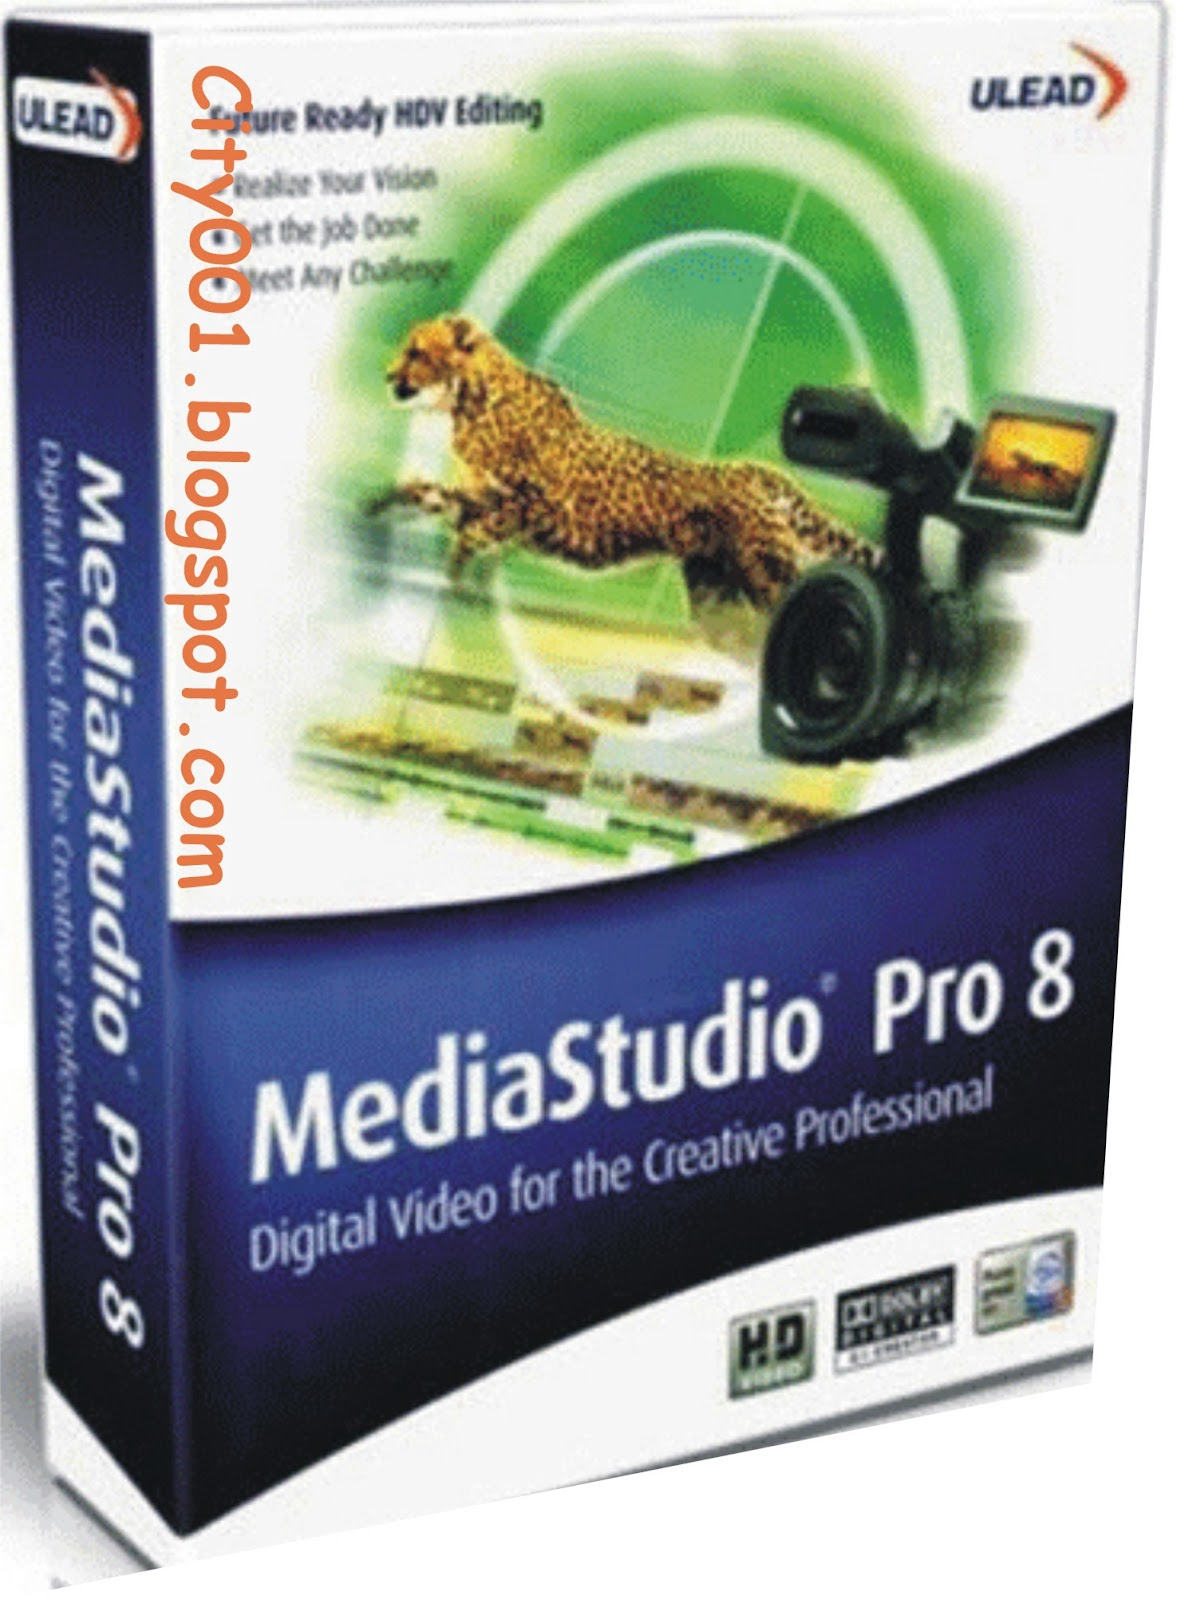 MediaStudio Pro 8,train video,train video clip,railroad video,model railroad video,model train video,steam train video,free train video,steam trains video clip,model train dvd,model railroad dvd